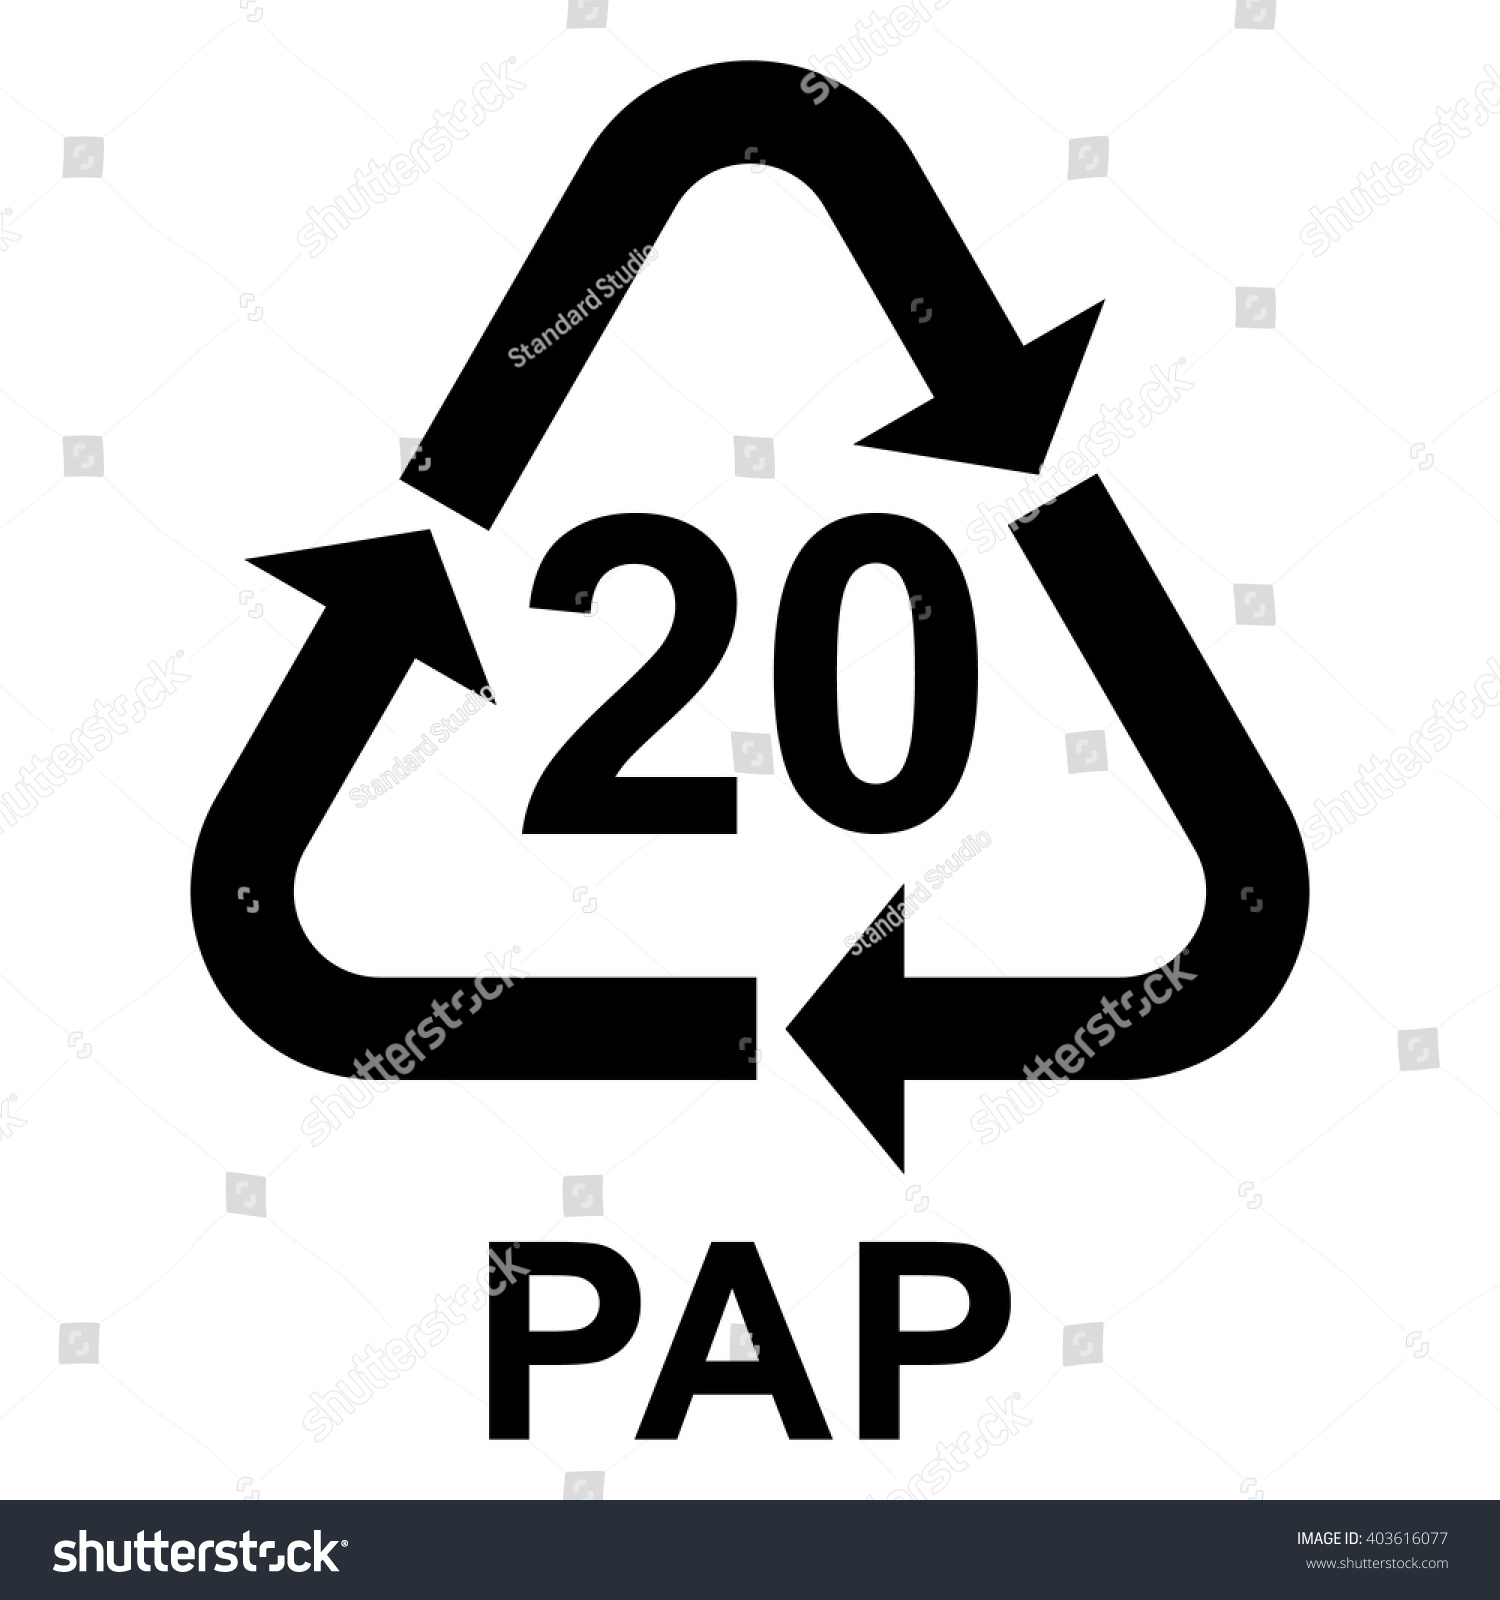 Paper recycling symbol pap 20 cardboard stock vector 403616077 paper recycling symbol pap 20 cardboard vector illustration buycottarizona